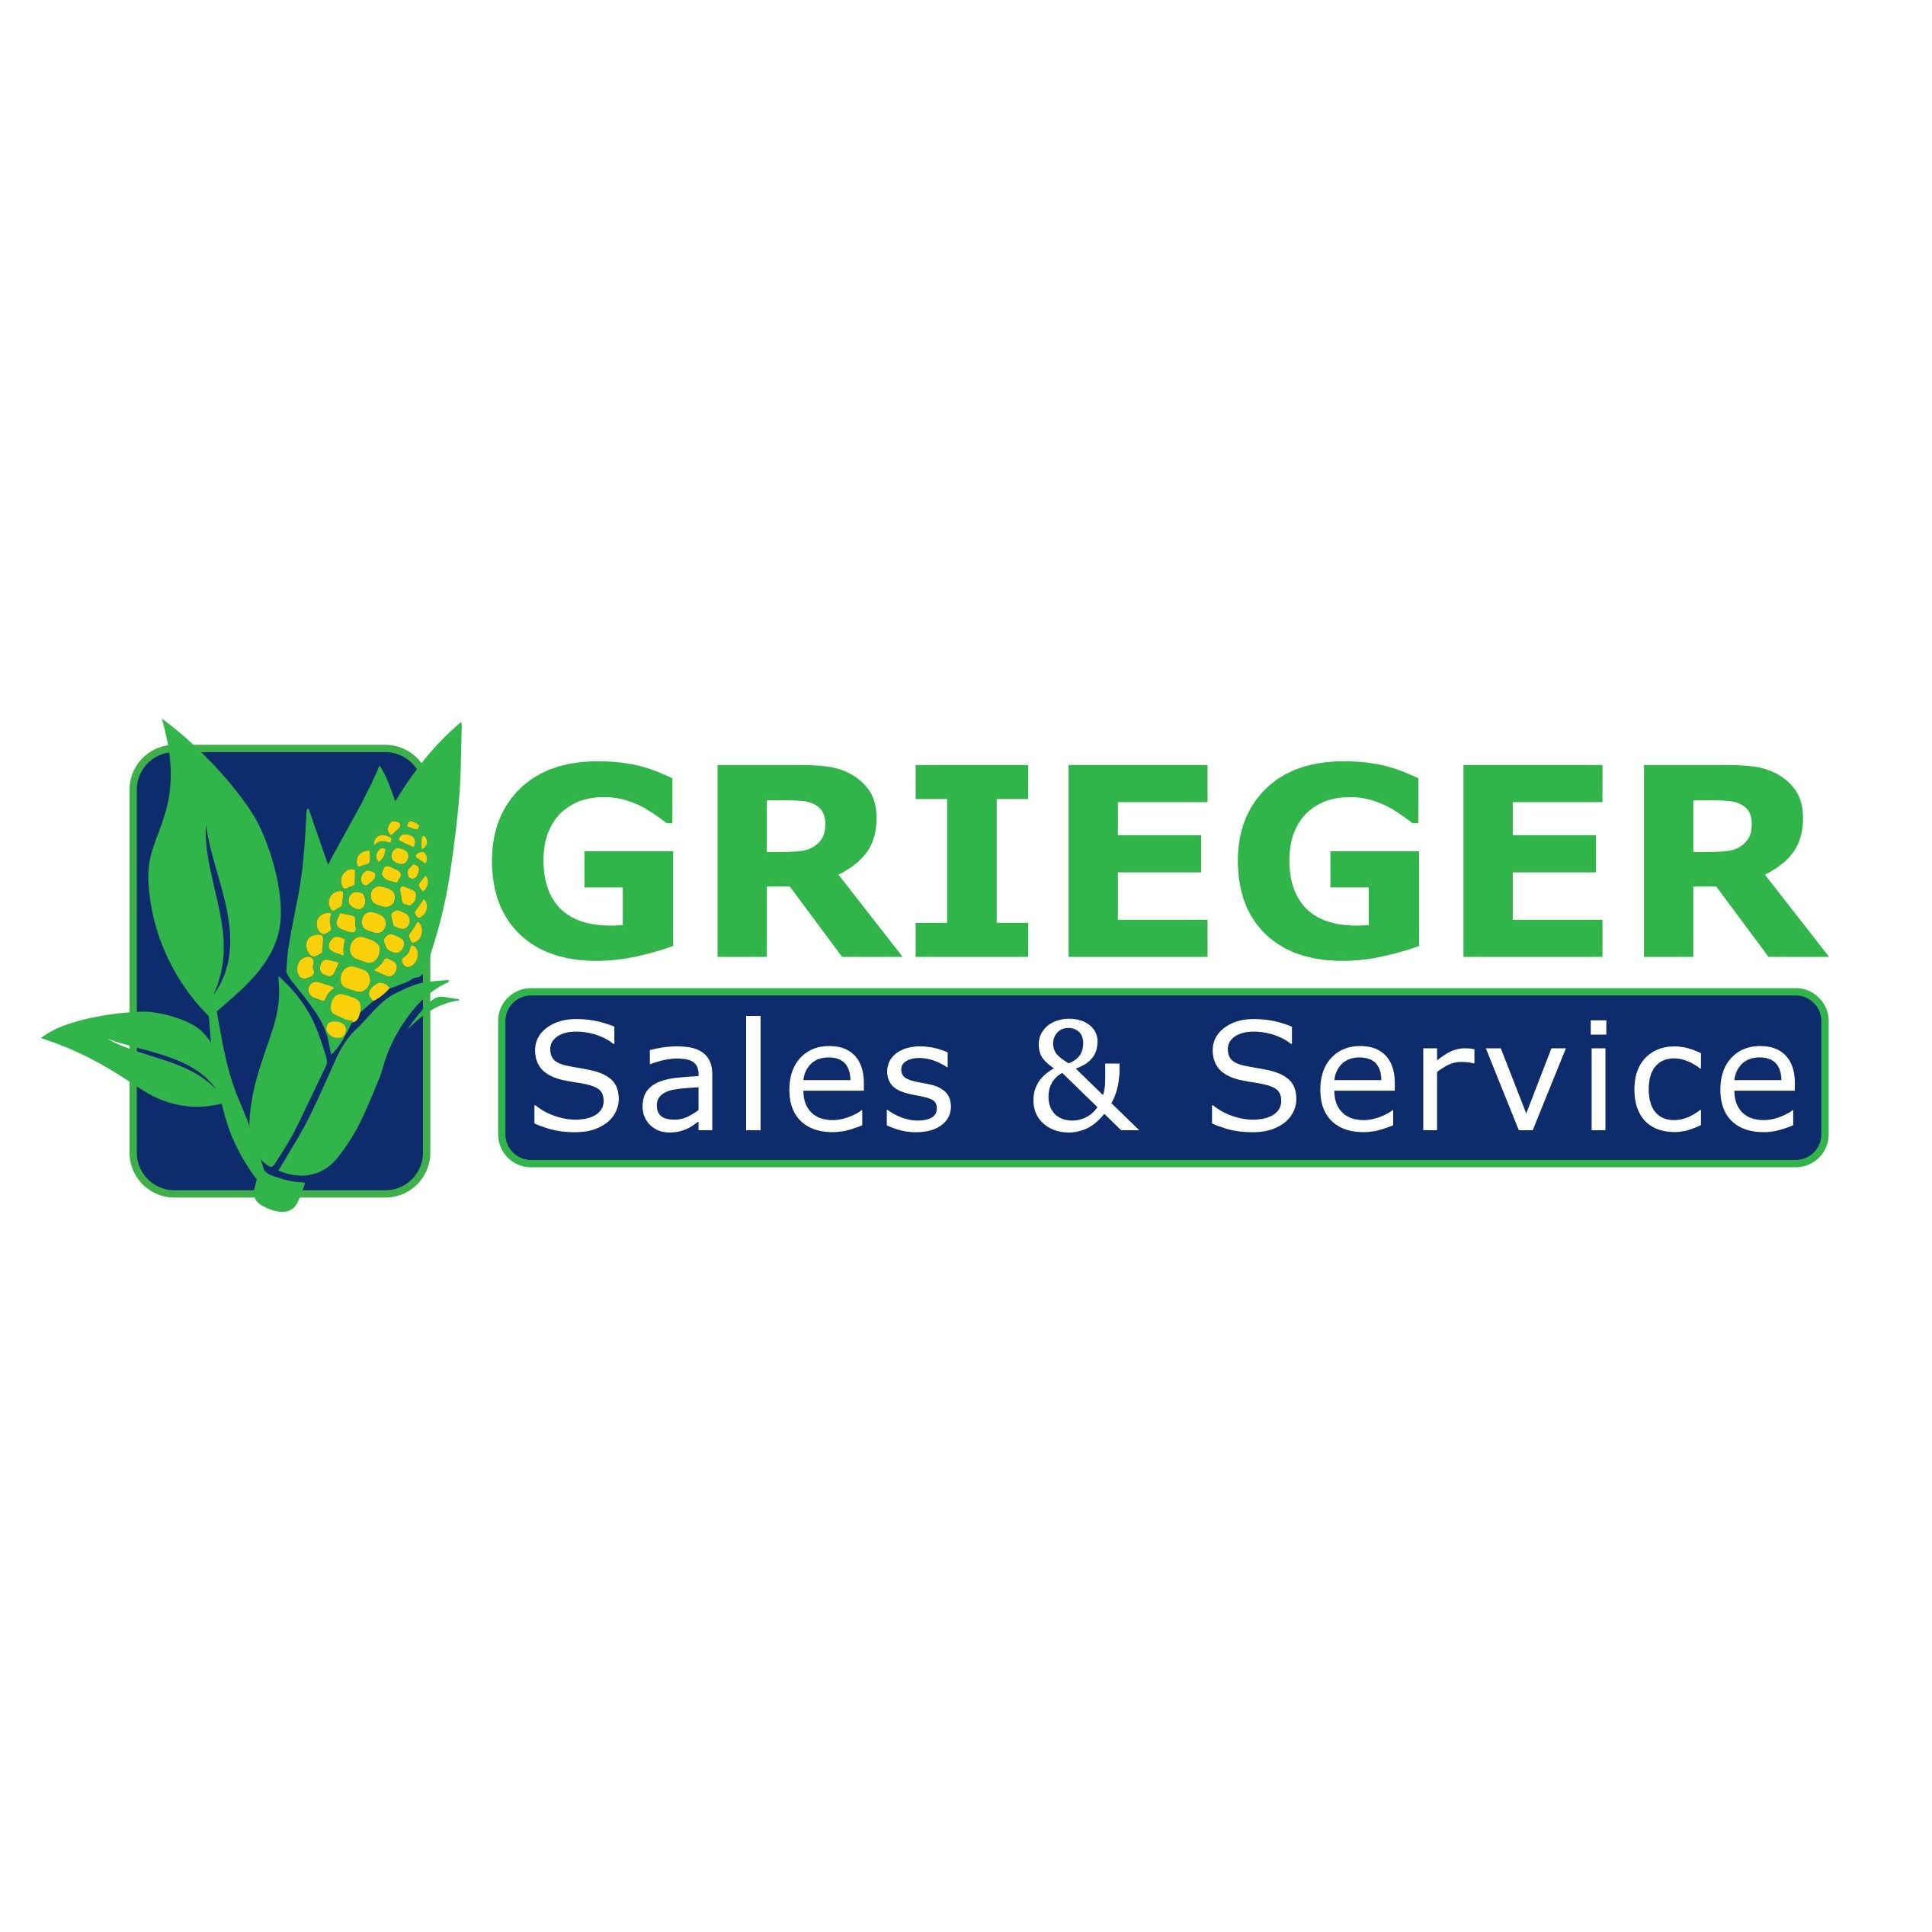 Grieger Sales & Service - Buffalo, ND - Farms, Orchards & Ranches